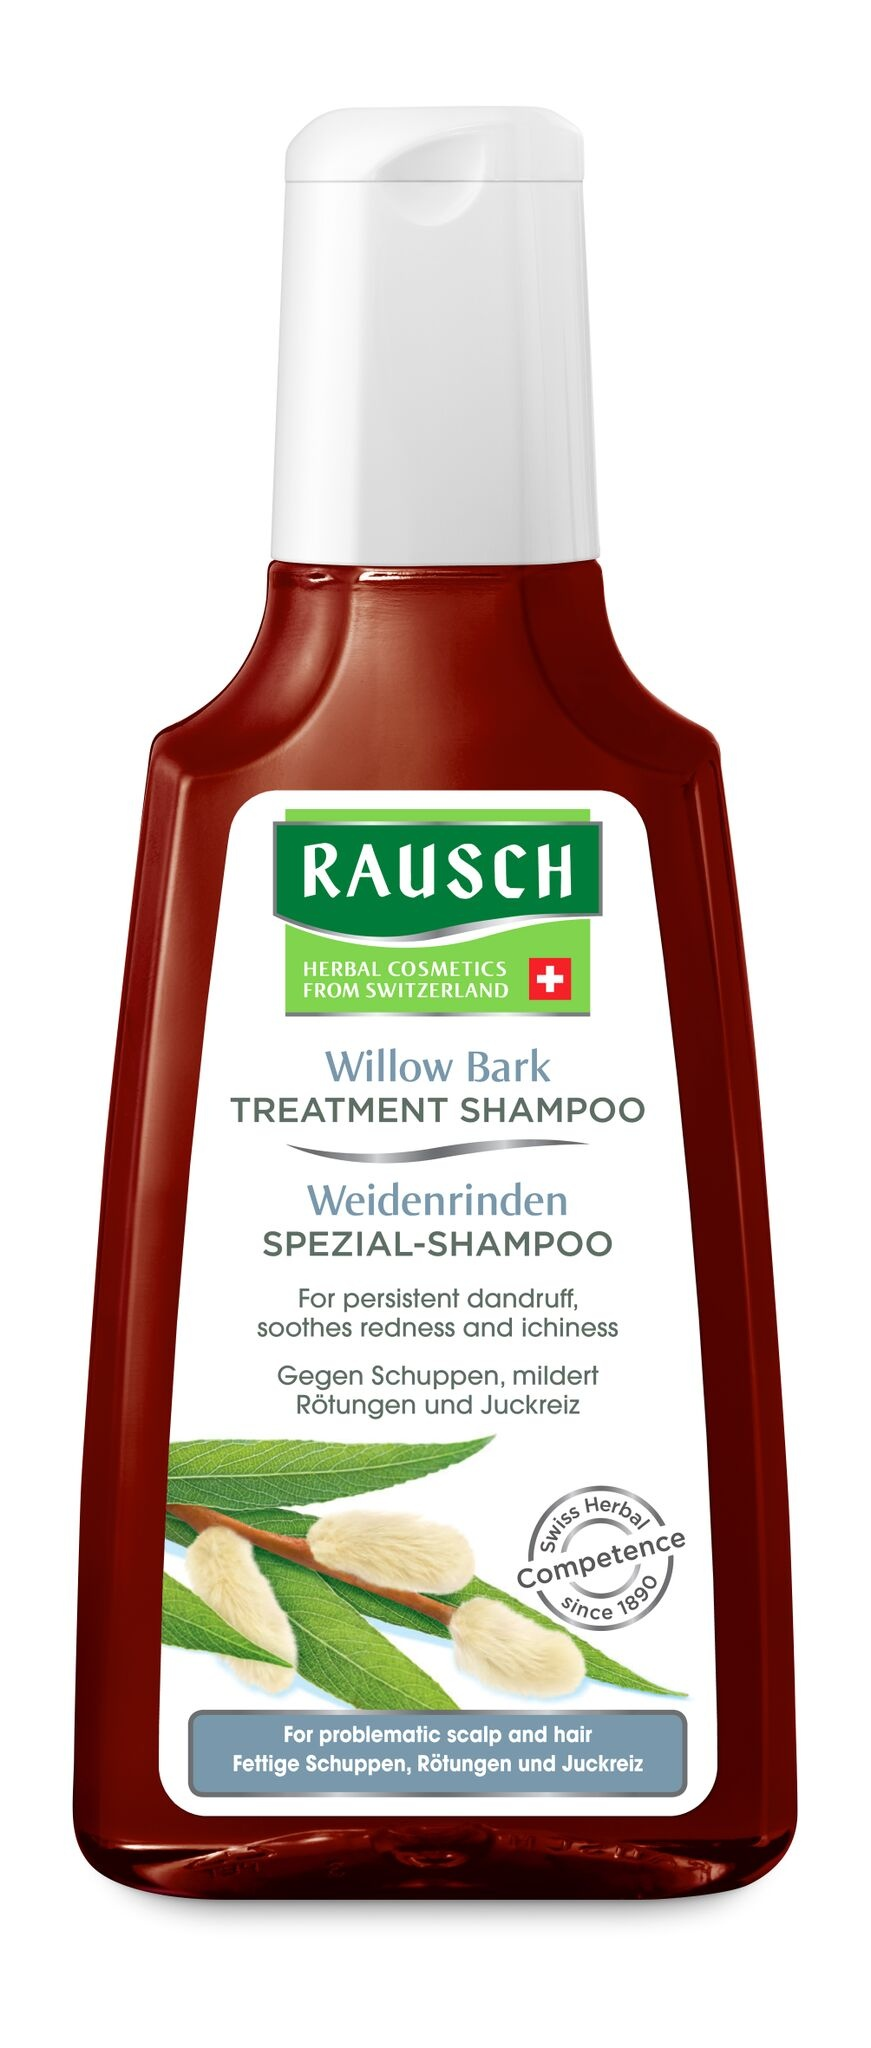 Rausch Wilow Bark Treatment Shampoo for Problematic Scalp and Hair 200mL